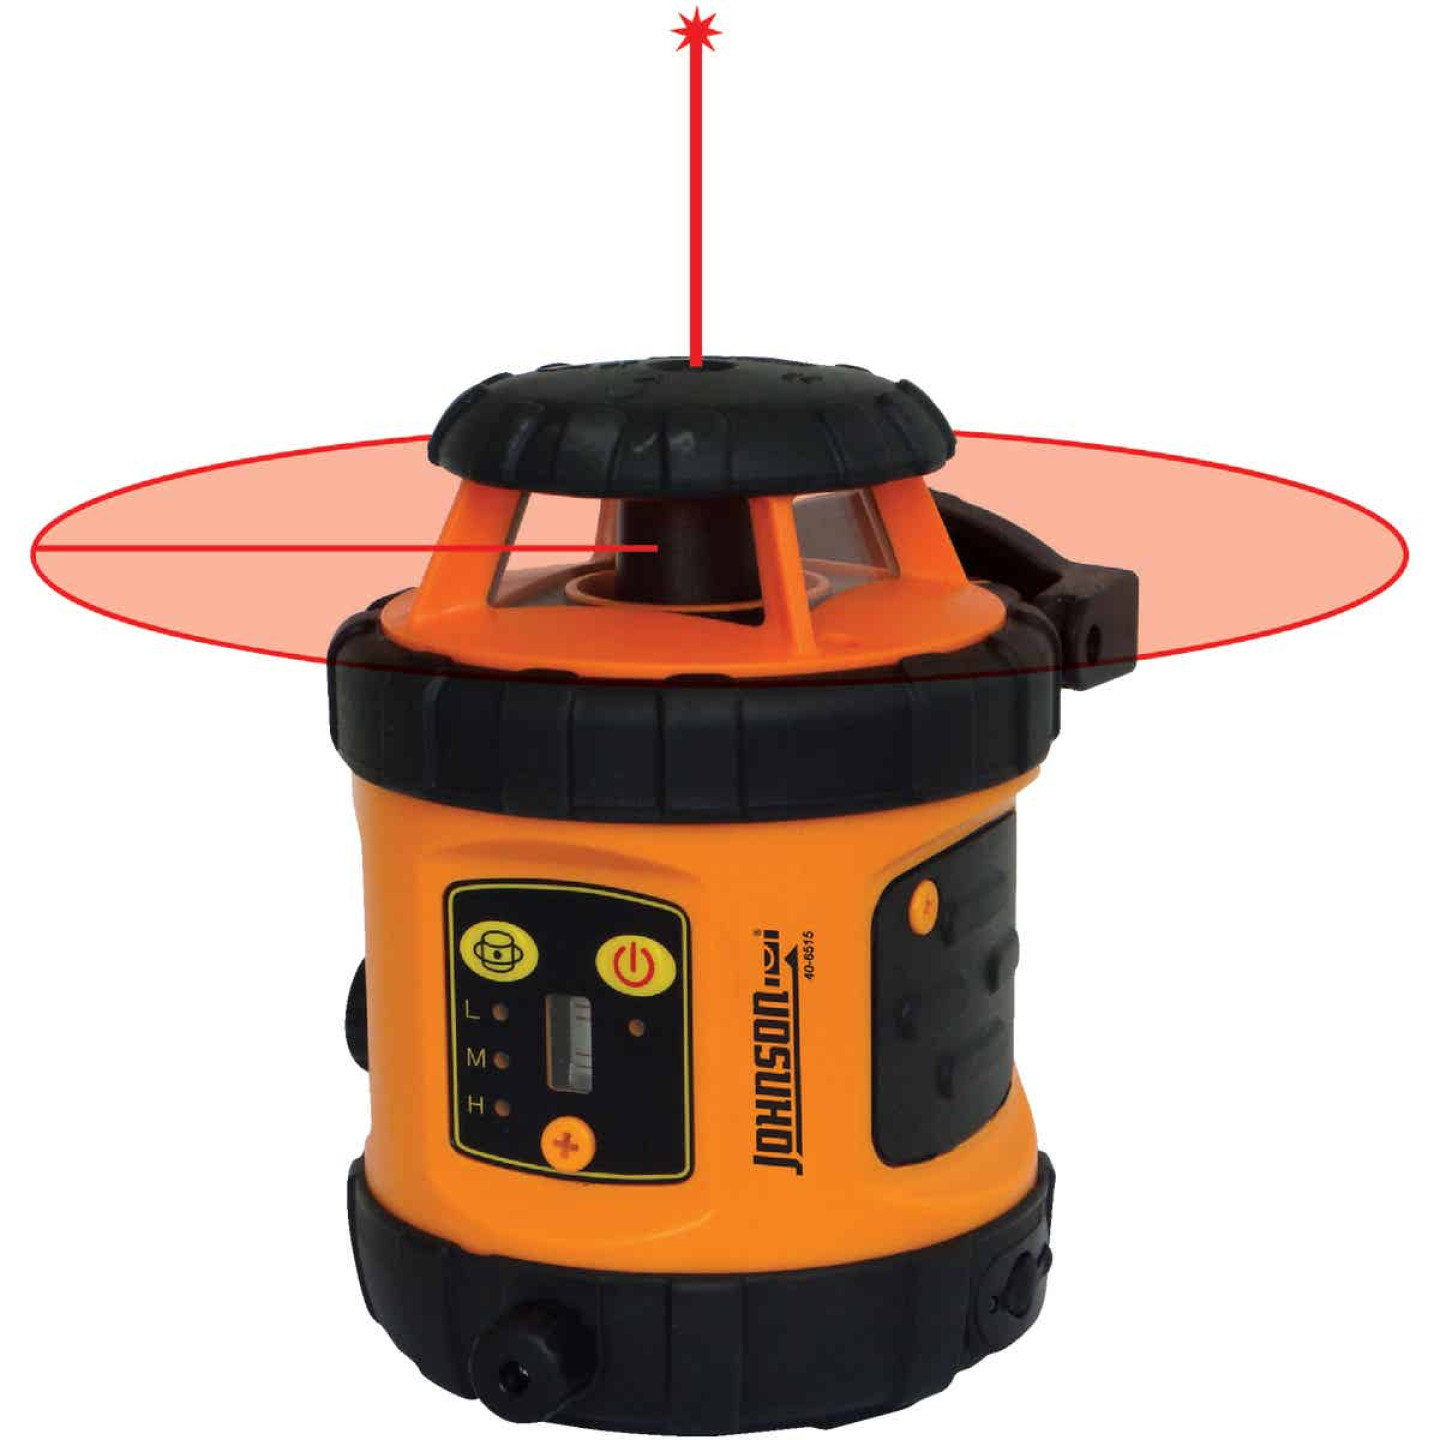 Johnson Level 800 Ft. Self-Leveling Rotary Laser Level Image 1